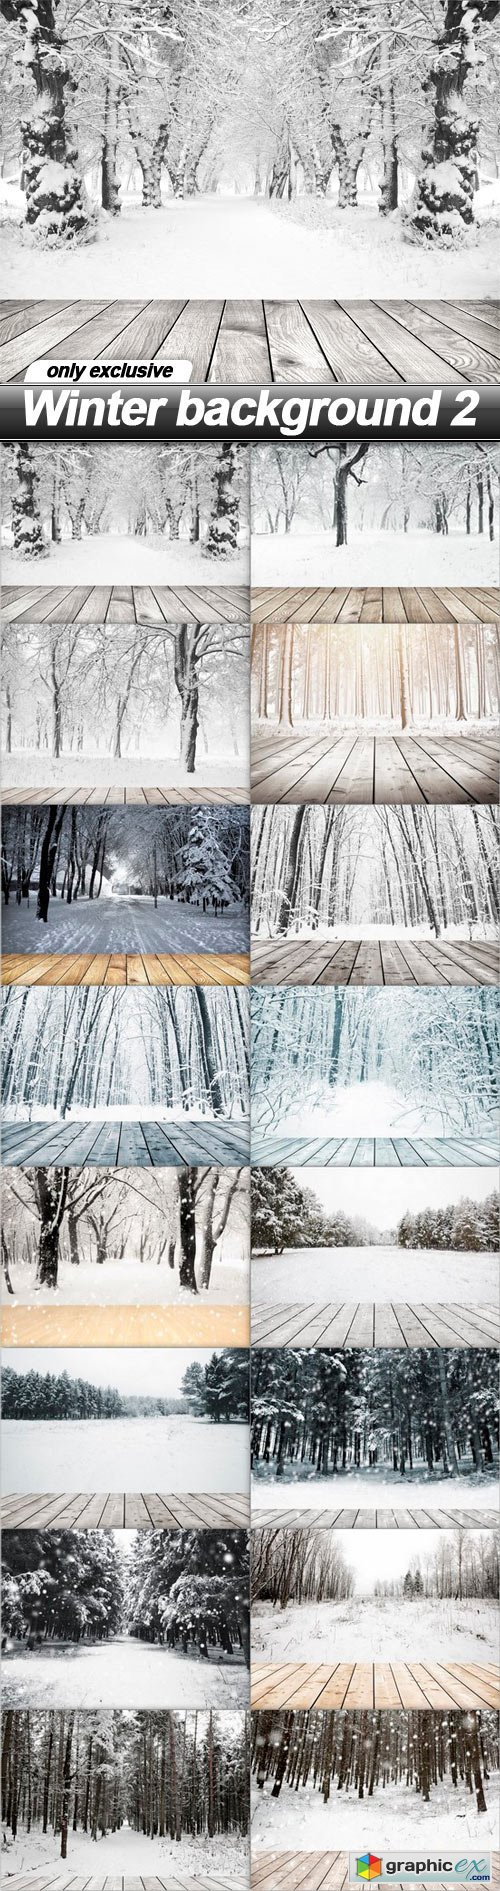 Winter background 2 - 16 UHQ JPEG